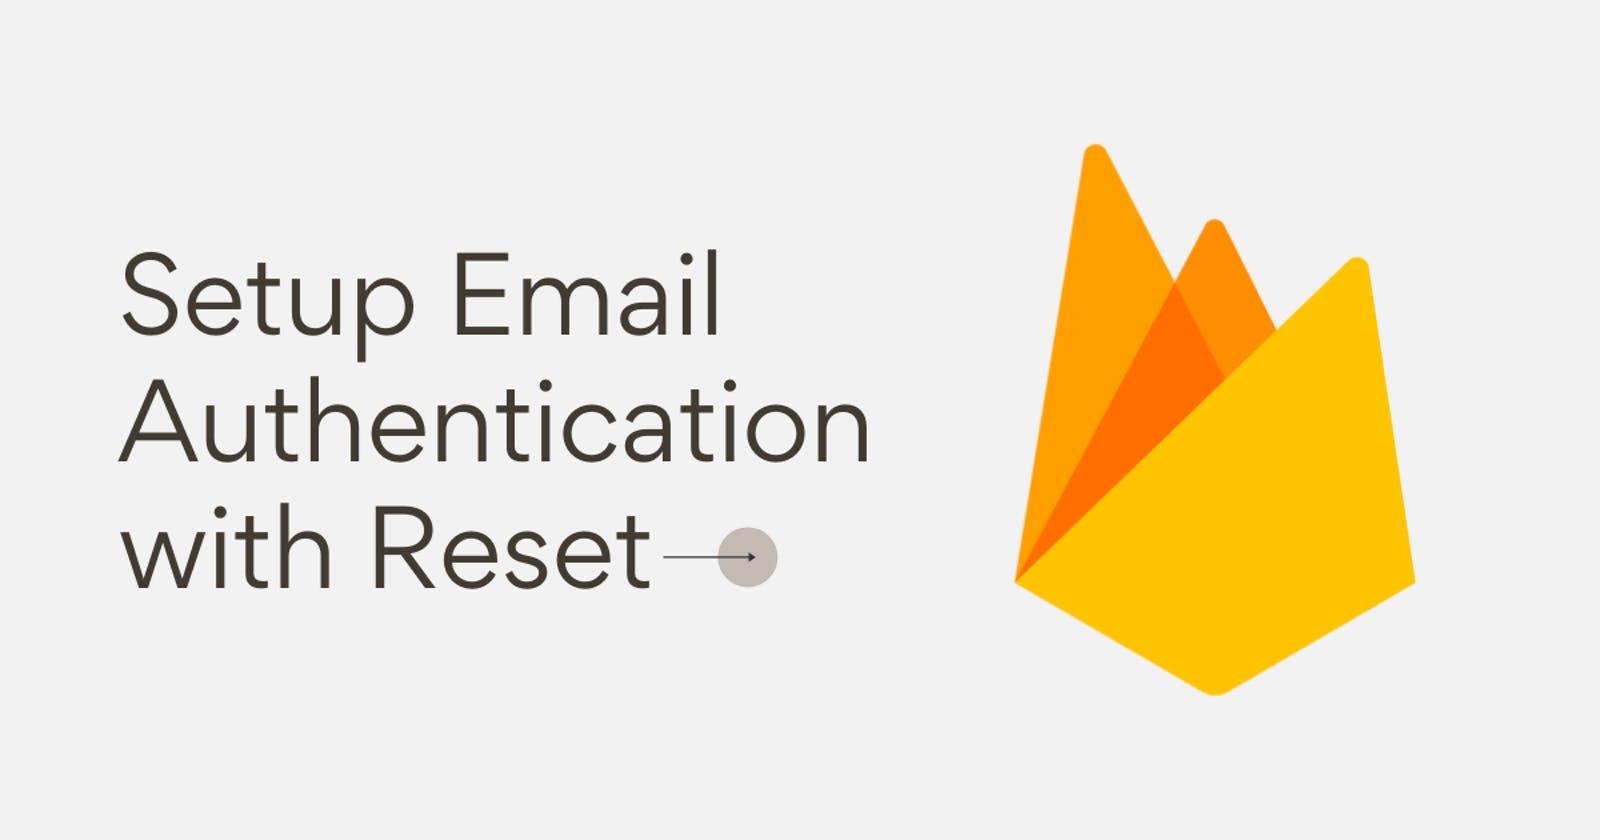 Setup Email Authentication with Reset option in React App 🚀